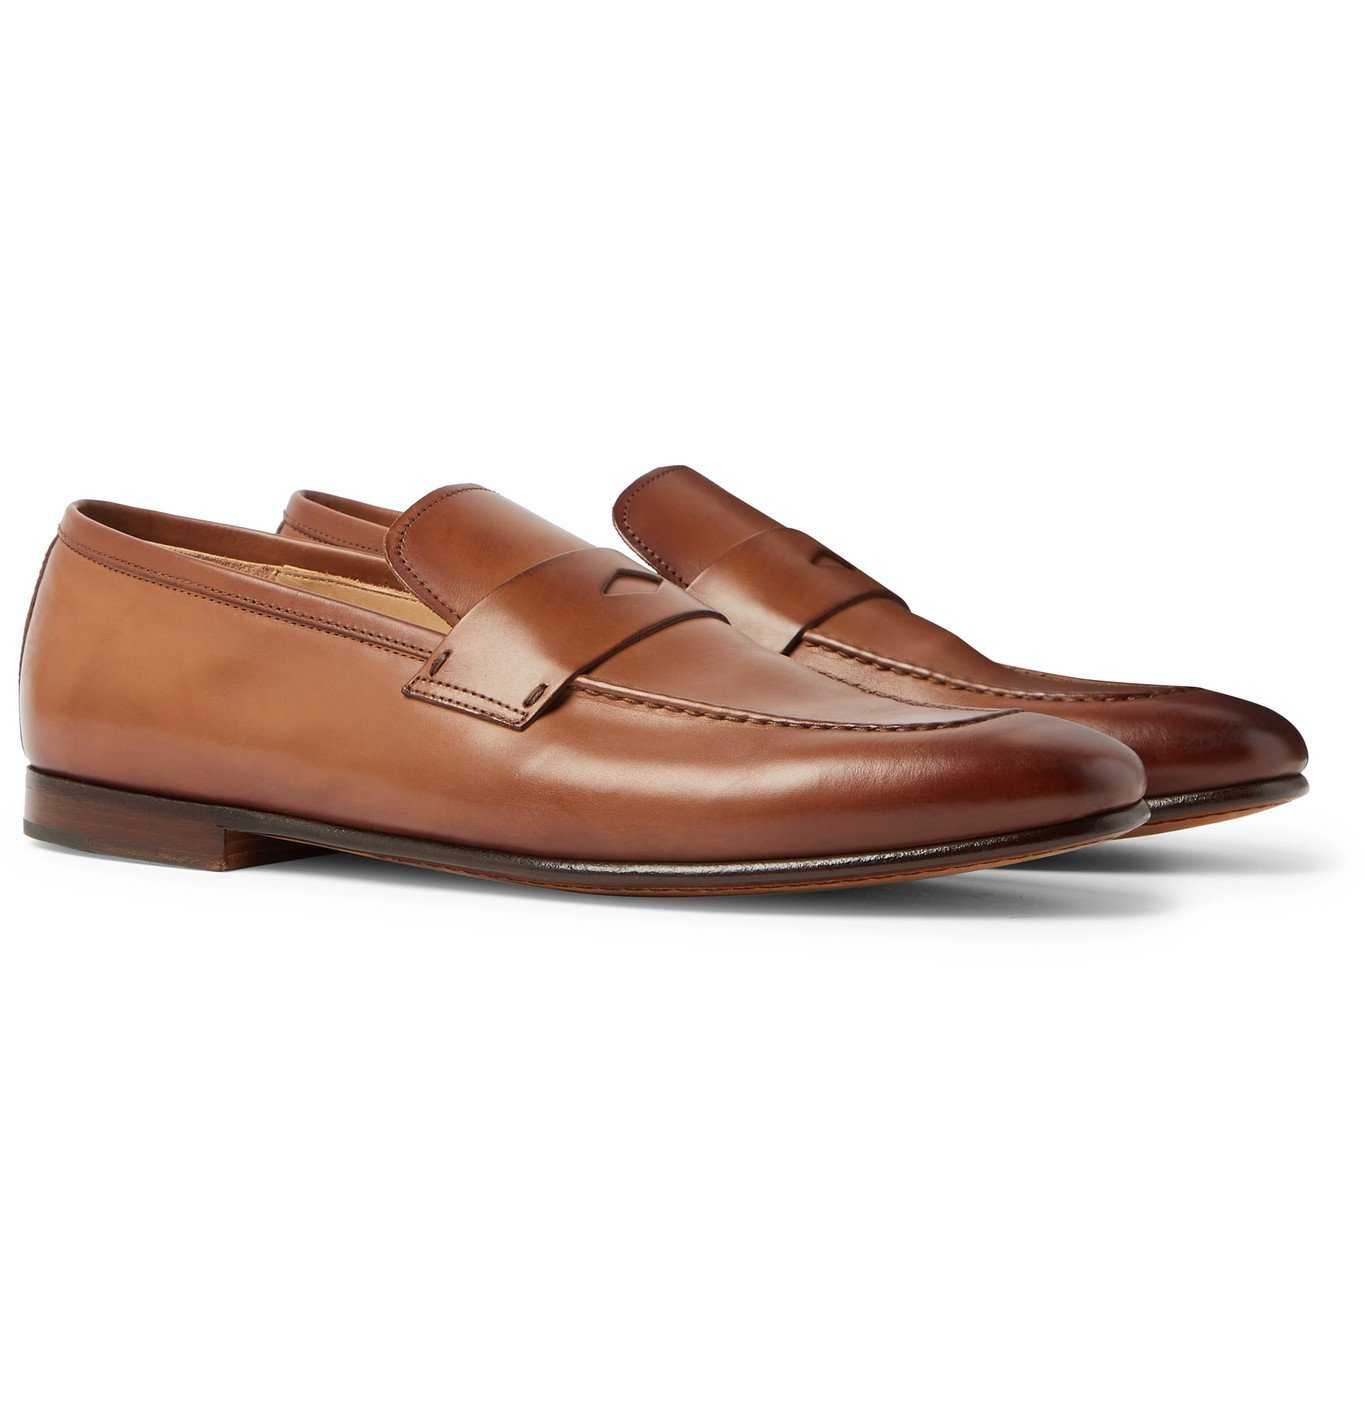 Dunhill - Chiltern Burnished-Leather Penny Loafers - Brown